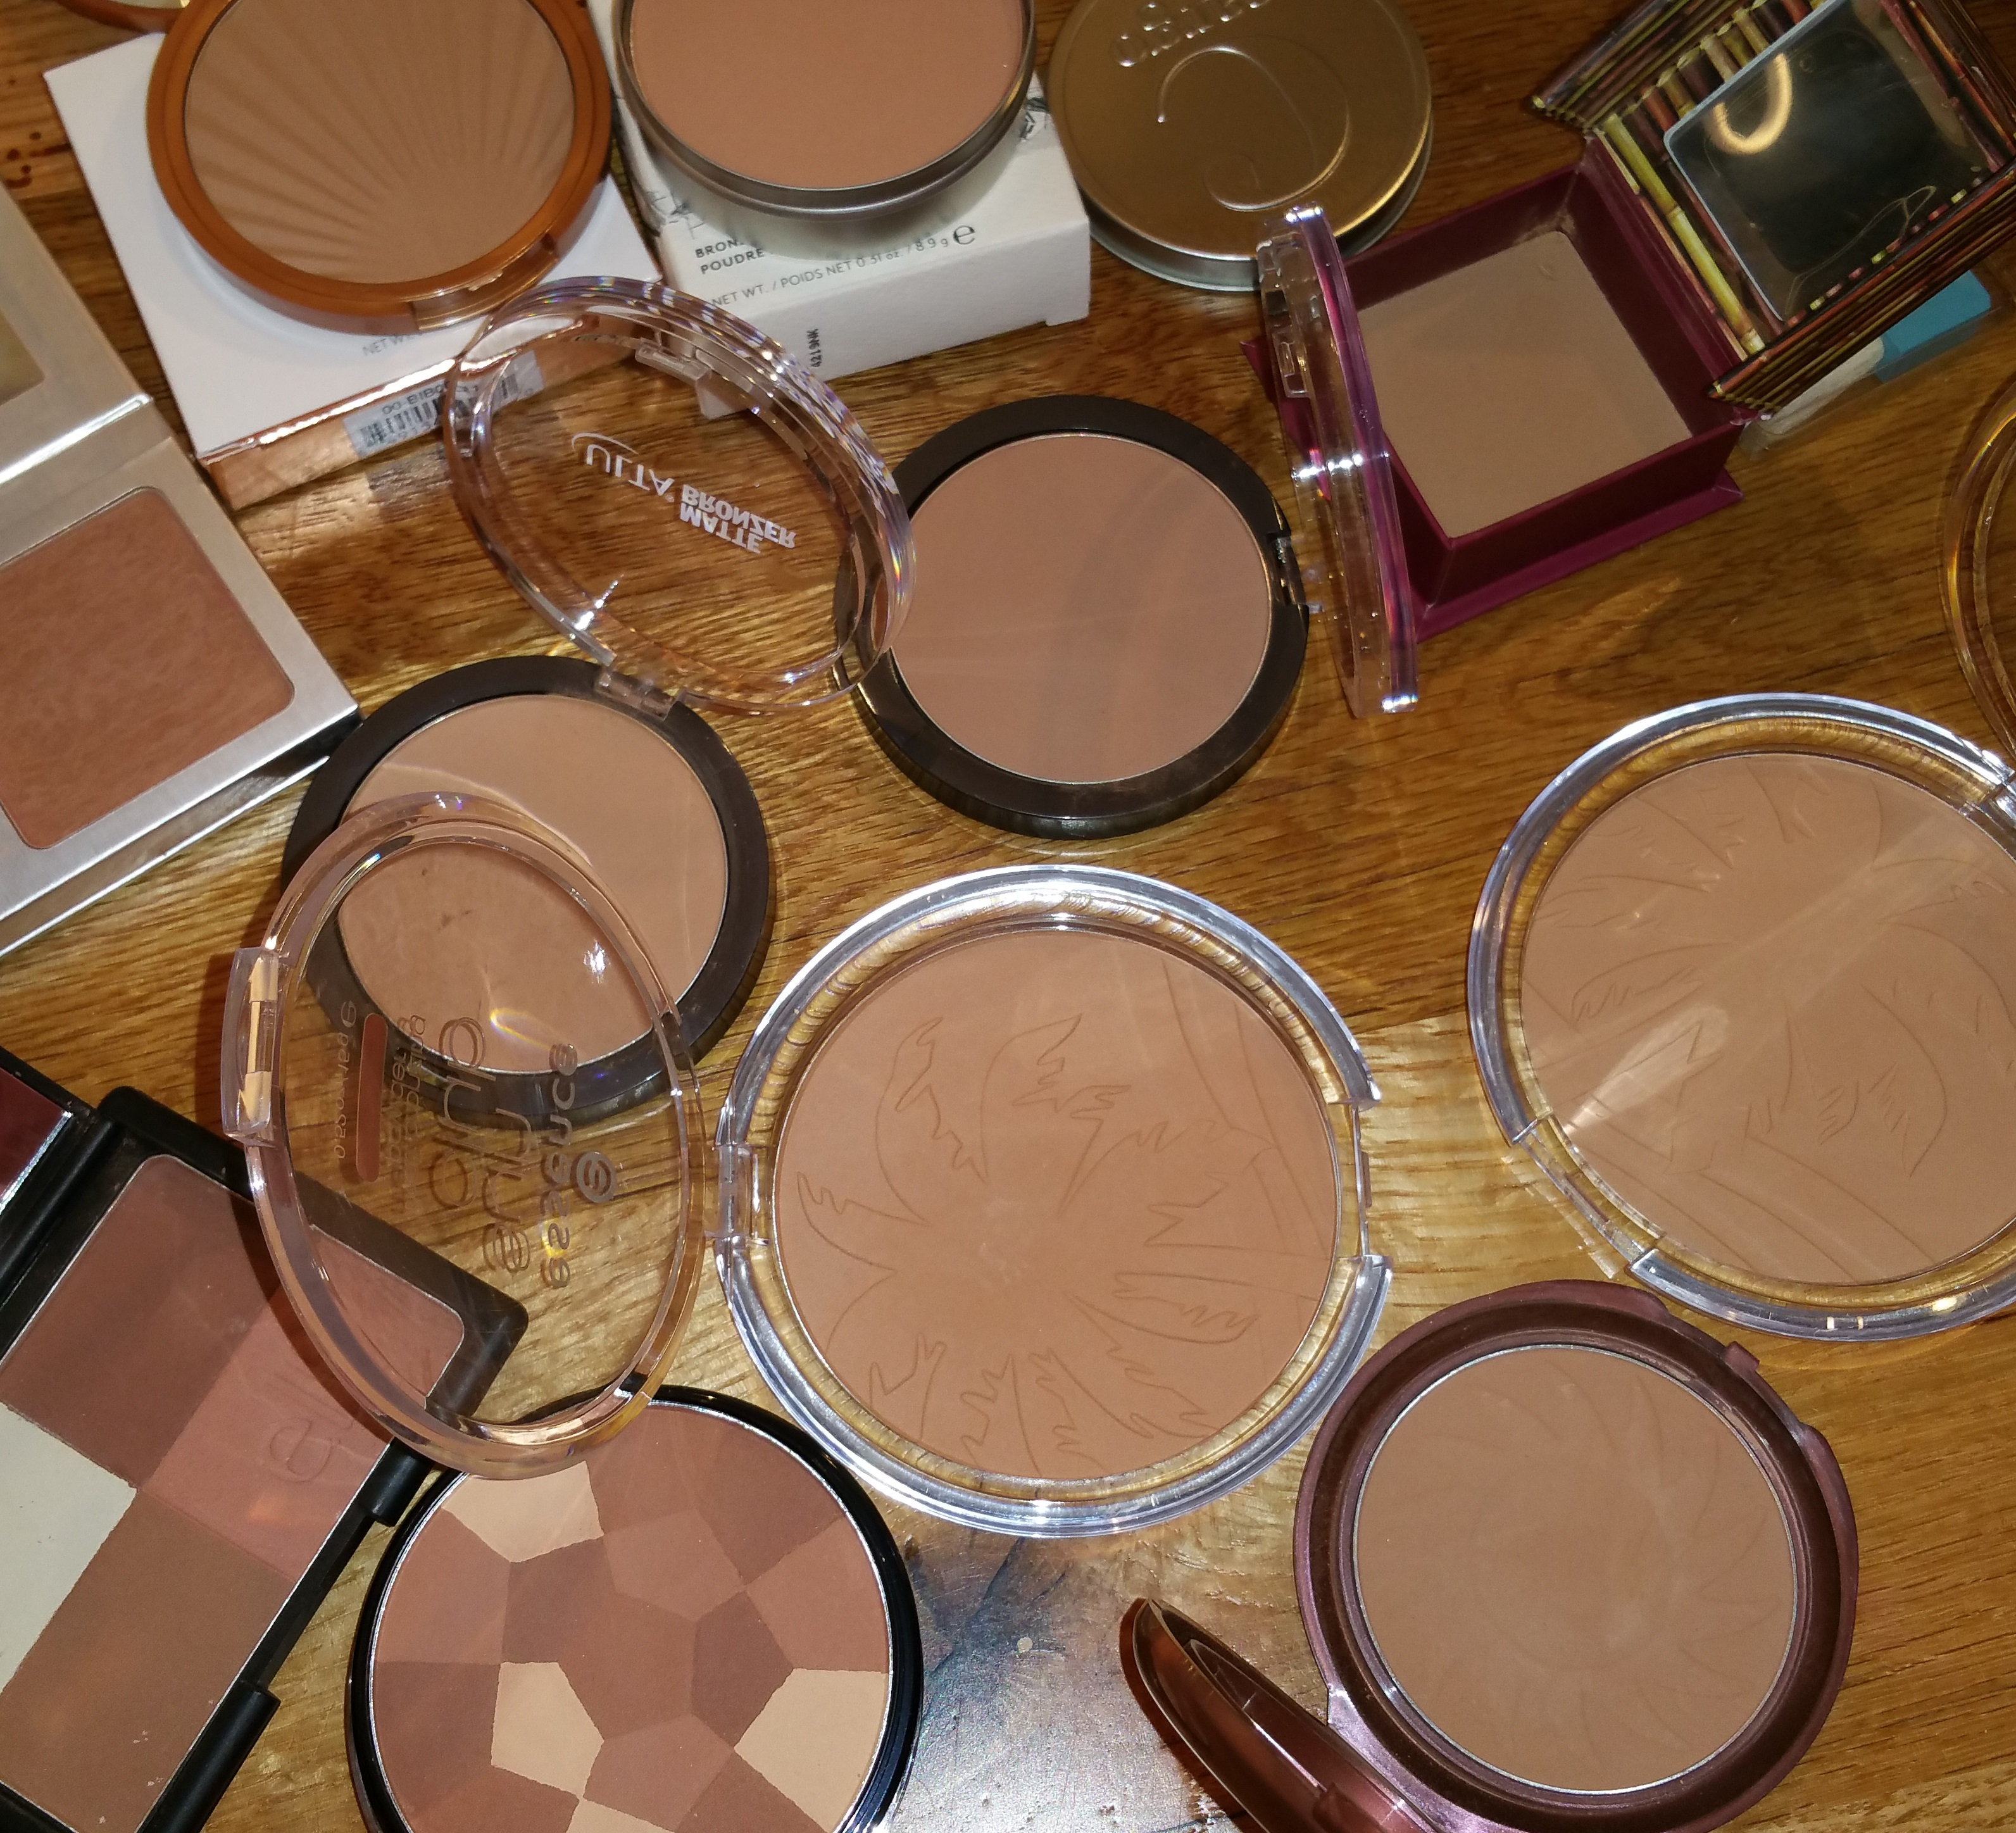 Starting from bottom left: e.l.f. Cool Bronzer, NYC Color Wheel - All Over Bronze, and Smooth Skin Bronzing Face Powder; Second row right to left: Essence Sun Club - 01 Natural and 02 Sunny; Third row: left to right: Ulta Matte Bronzer Warm and Cool; Top row right to left: Benefit Hoola, Cargo Matte Bronzer - Medium, Laura Geller Matte - Medium, and It Cosmetics CC + Bronzer.